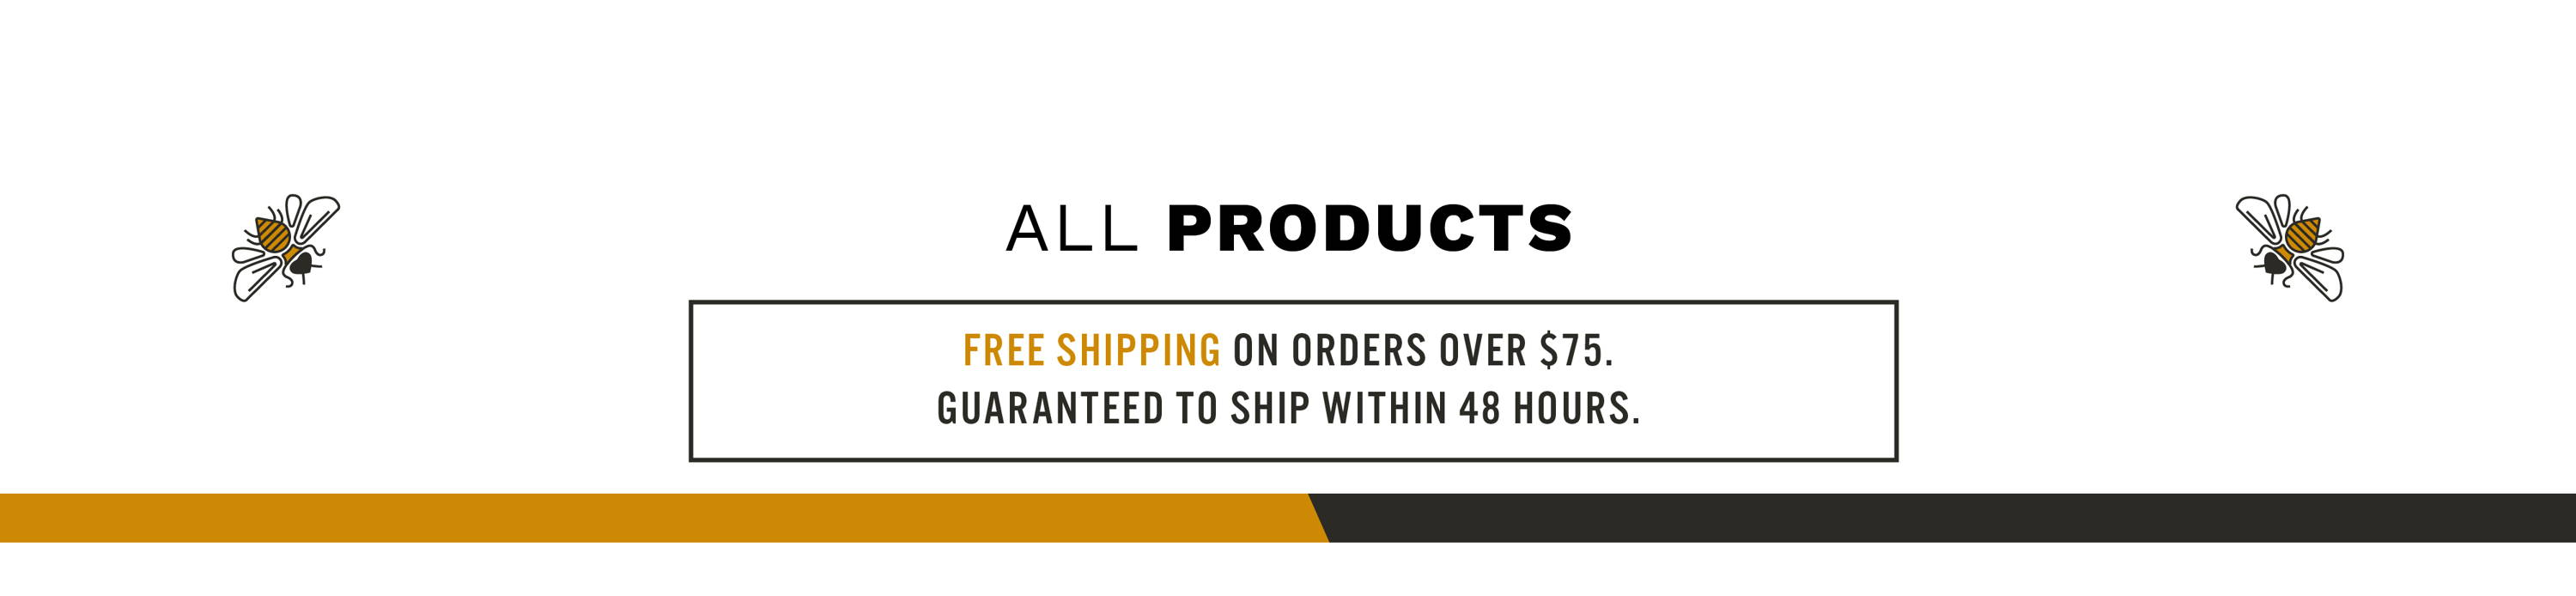 ALL PRODUCTS  FREE SHIPPING ON ORDERS OVER $75. GUARANTEED TO SHIP WITHIN 48 HOURS.